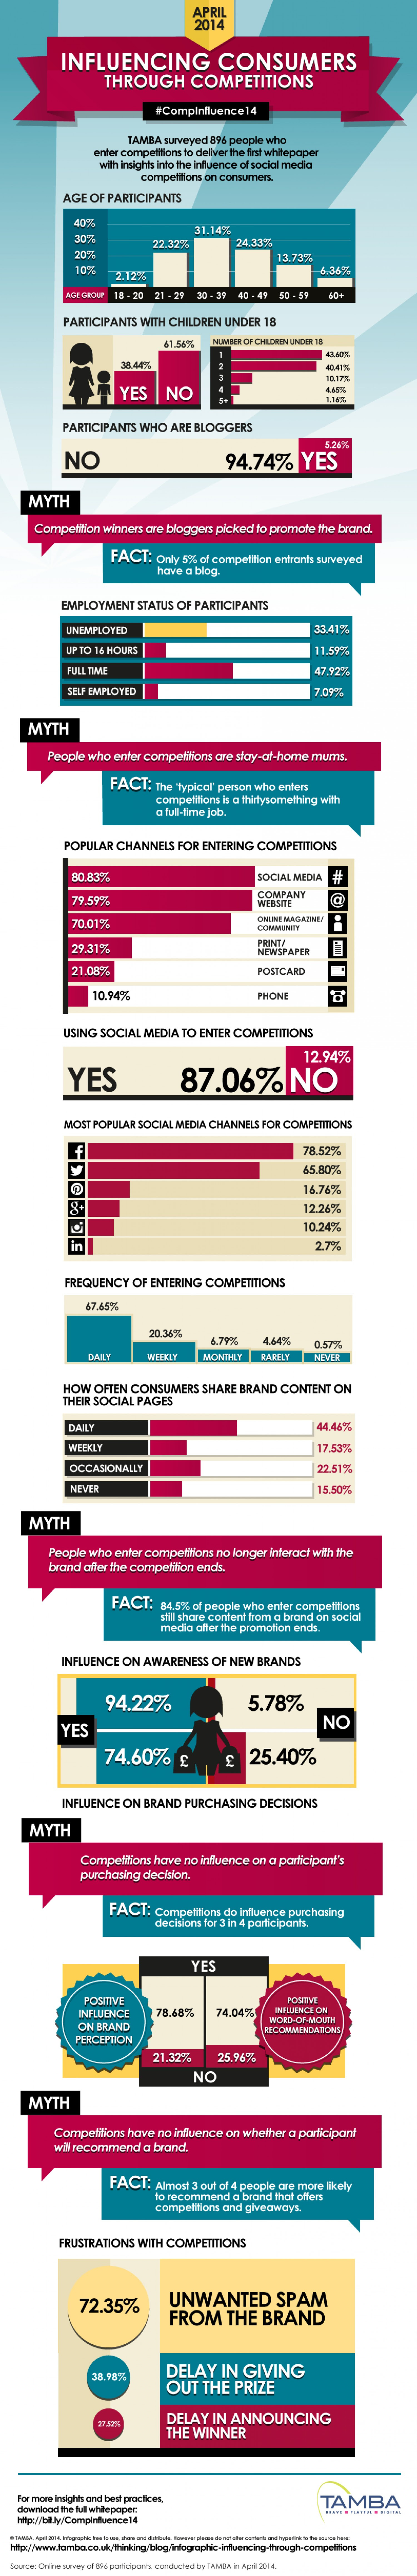 Tthe impact of #socialmedia competitions on consumers - #infographic